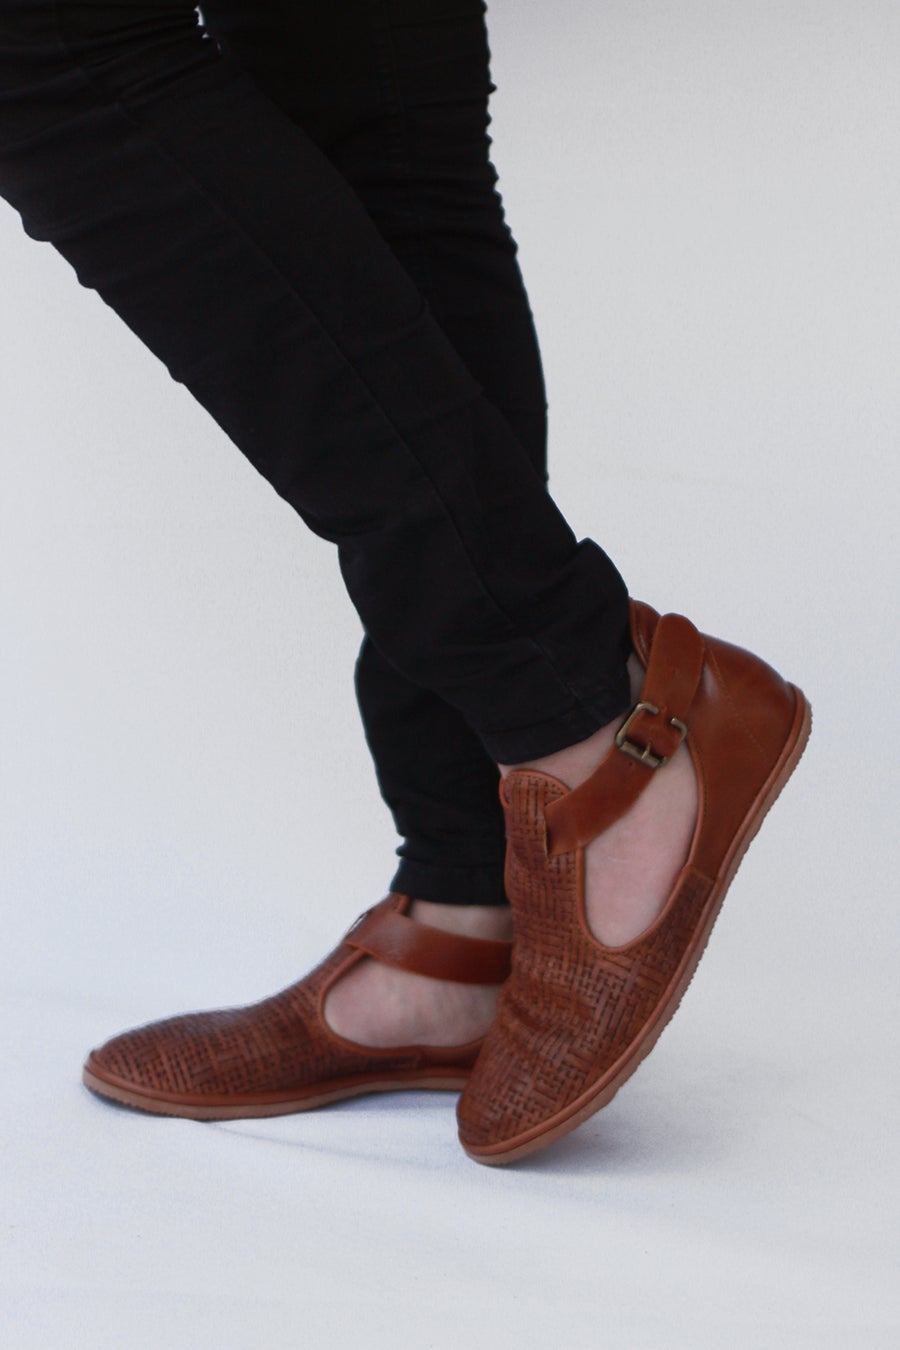 Image of Flat leather shoes - Textured Cut-out in Tobacco Brown